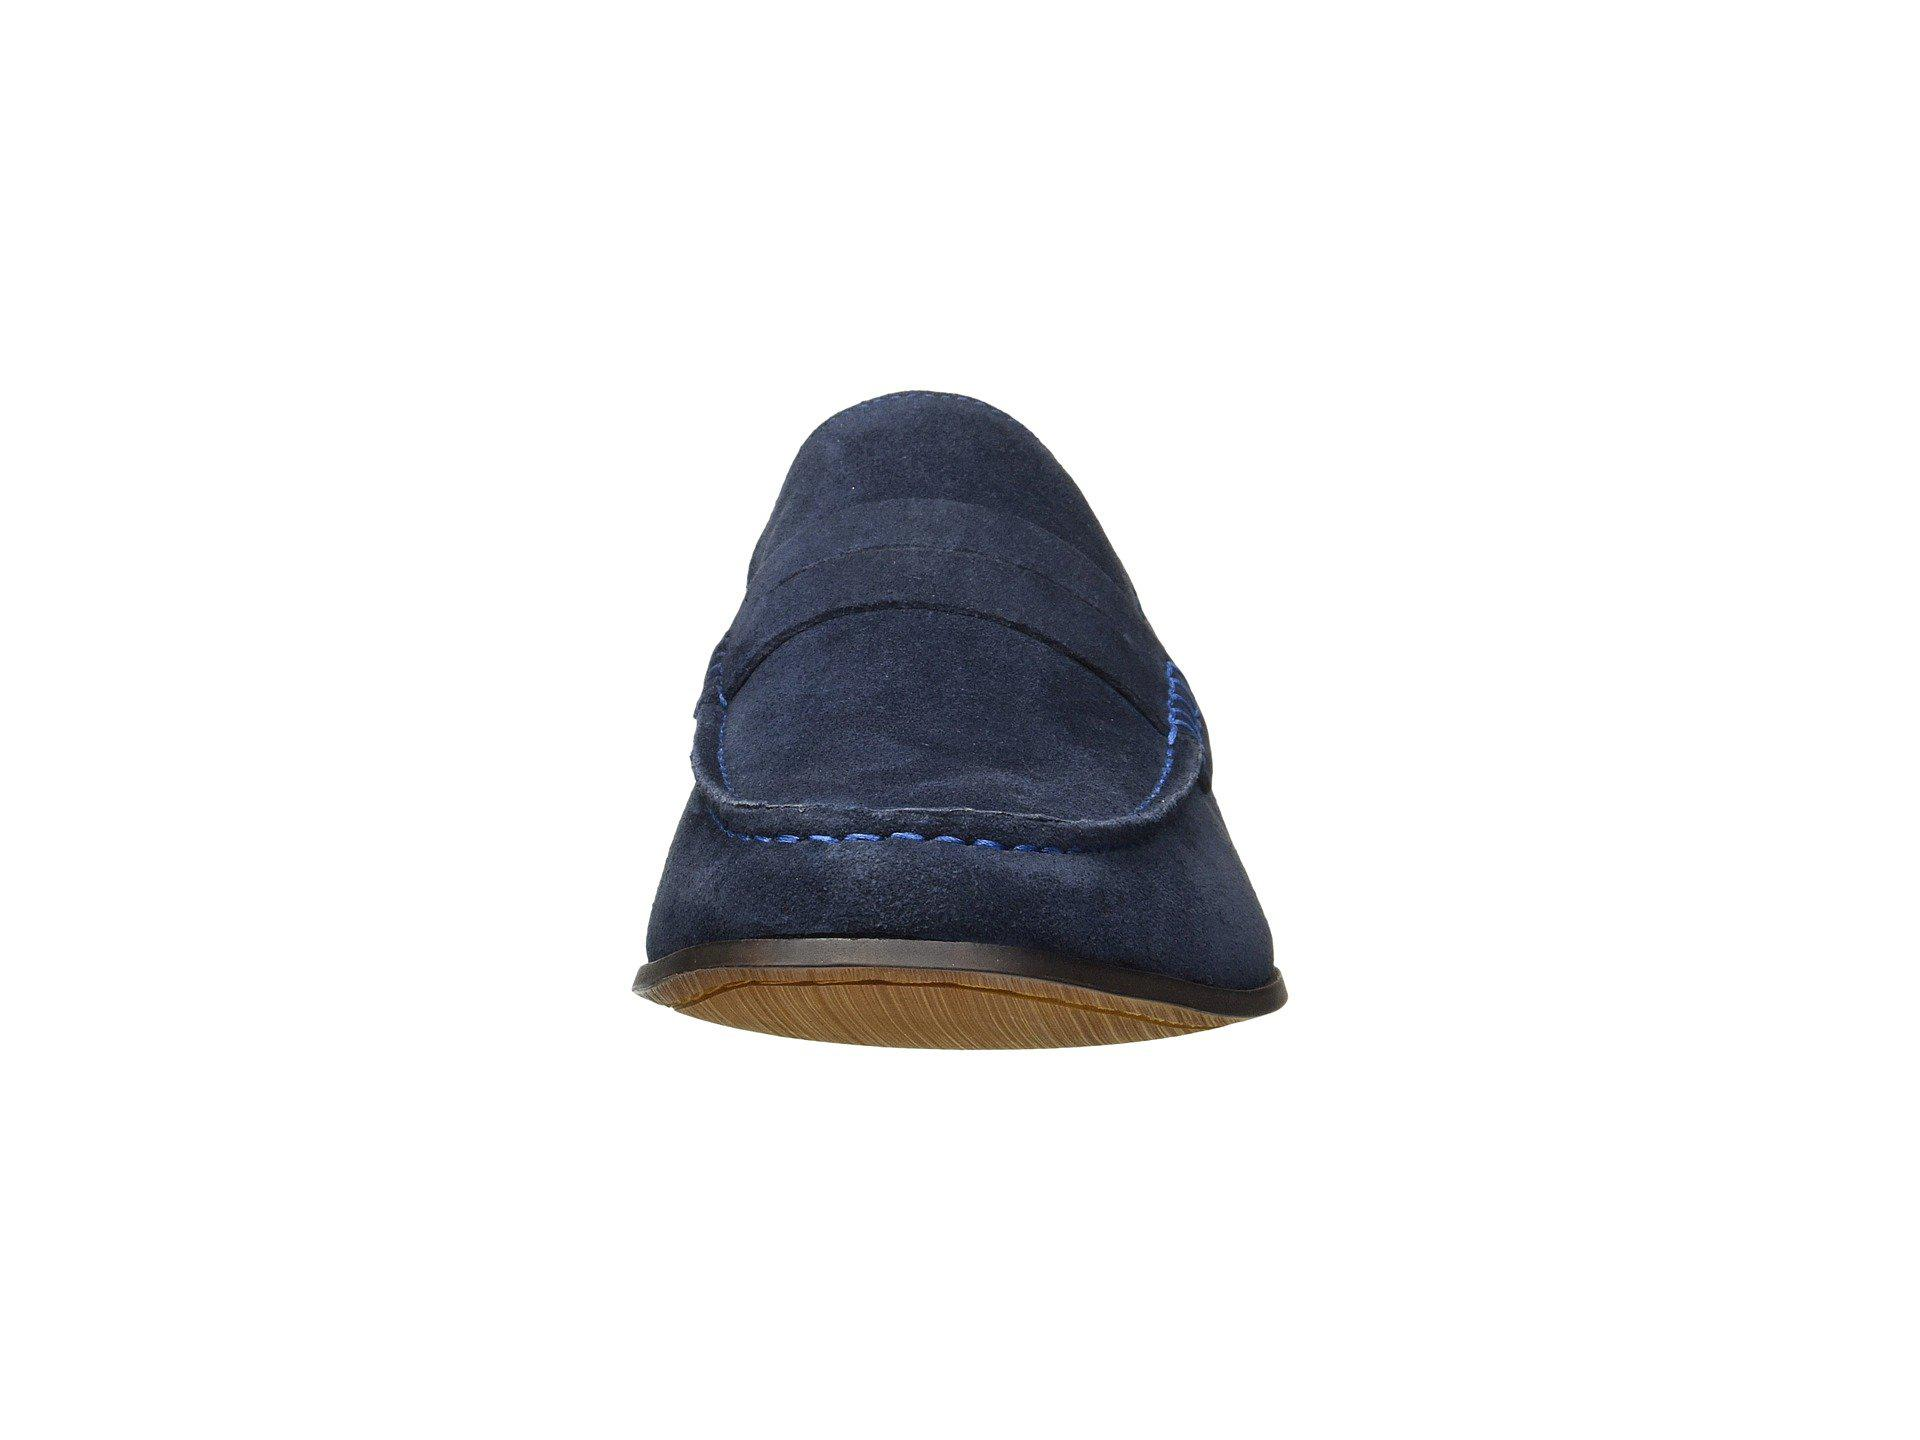 a10b04e57c1 Kenneth Cole Reaction - Blue Crespo Loafer (grey Suede) Men s Slip-on  Dress. View fullscreen